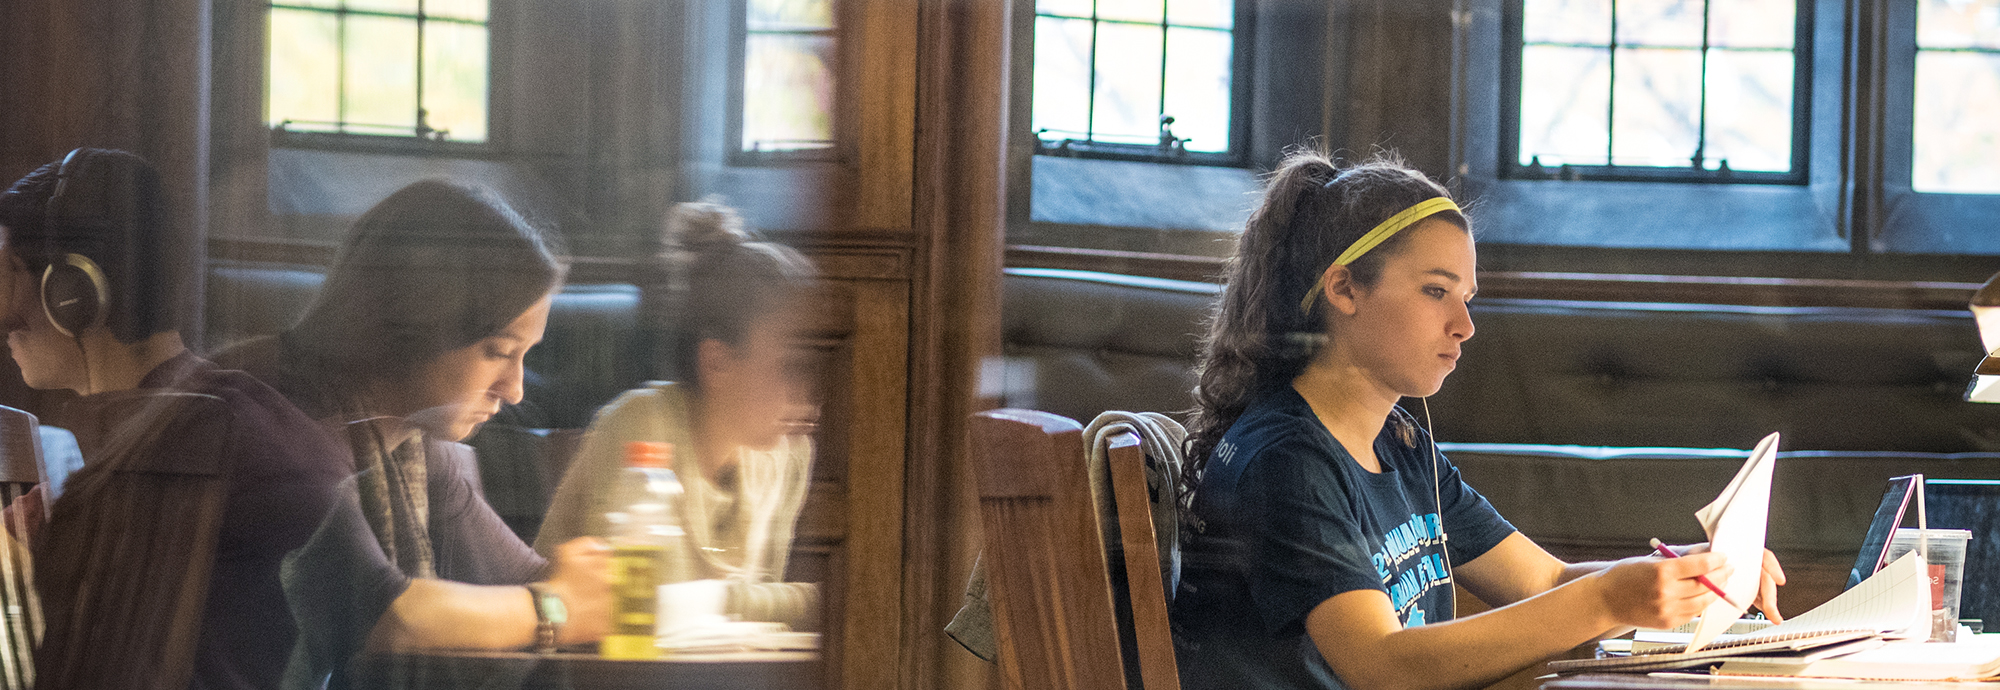 Students studying in Linderman Library at Lehigh University